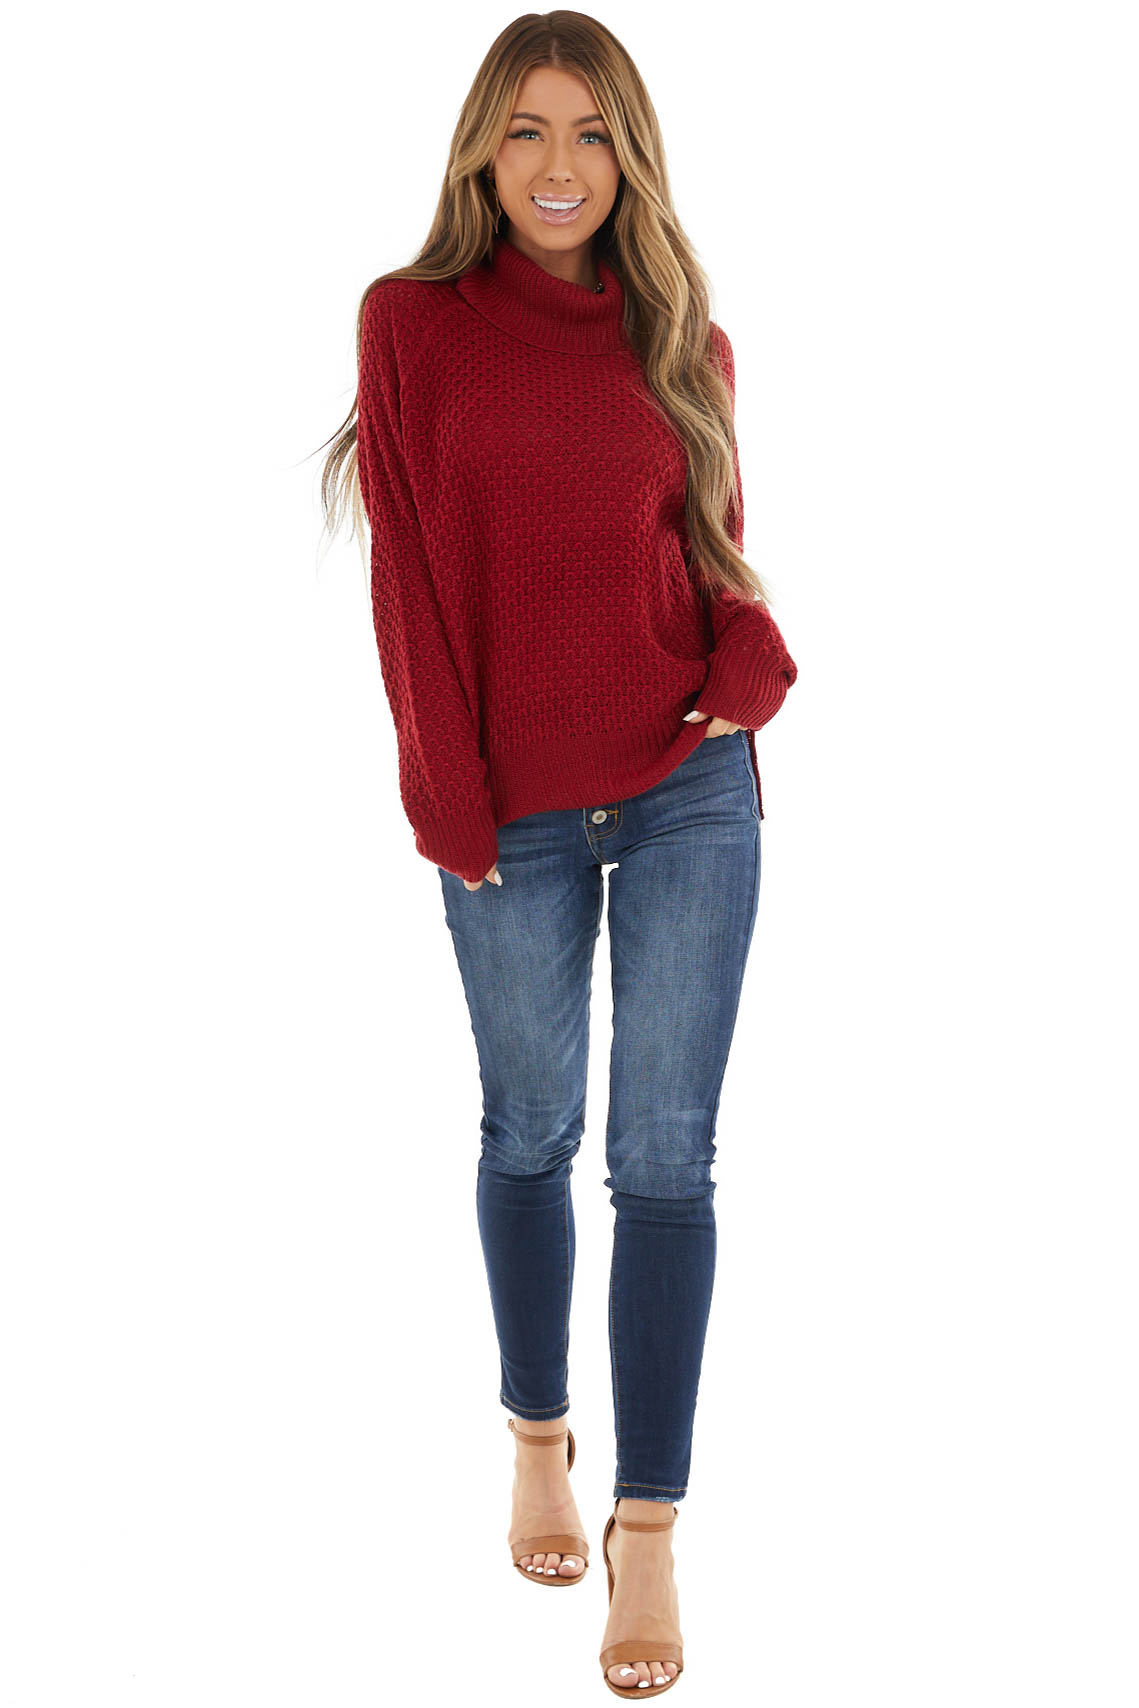 Cranberry Waffle Knit Turtleneck Sweater with Long Sleeves